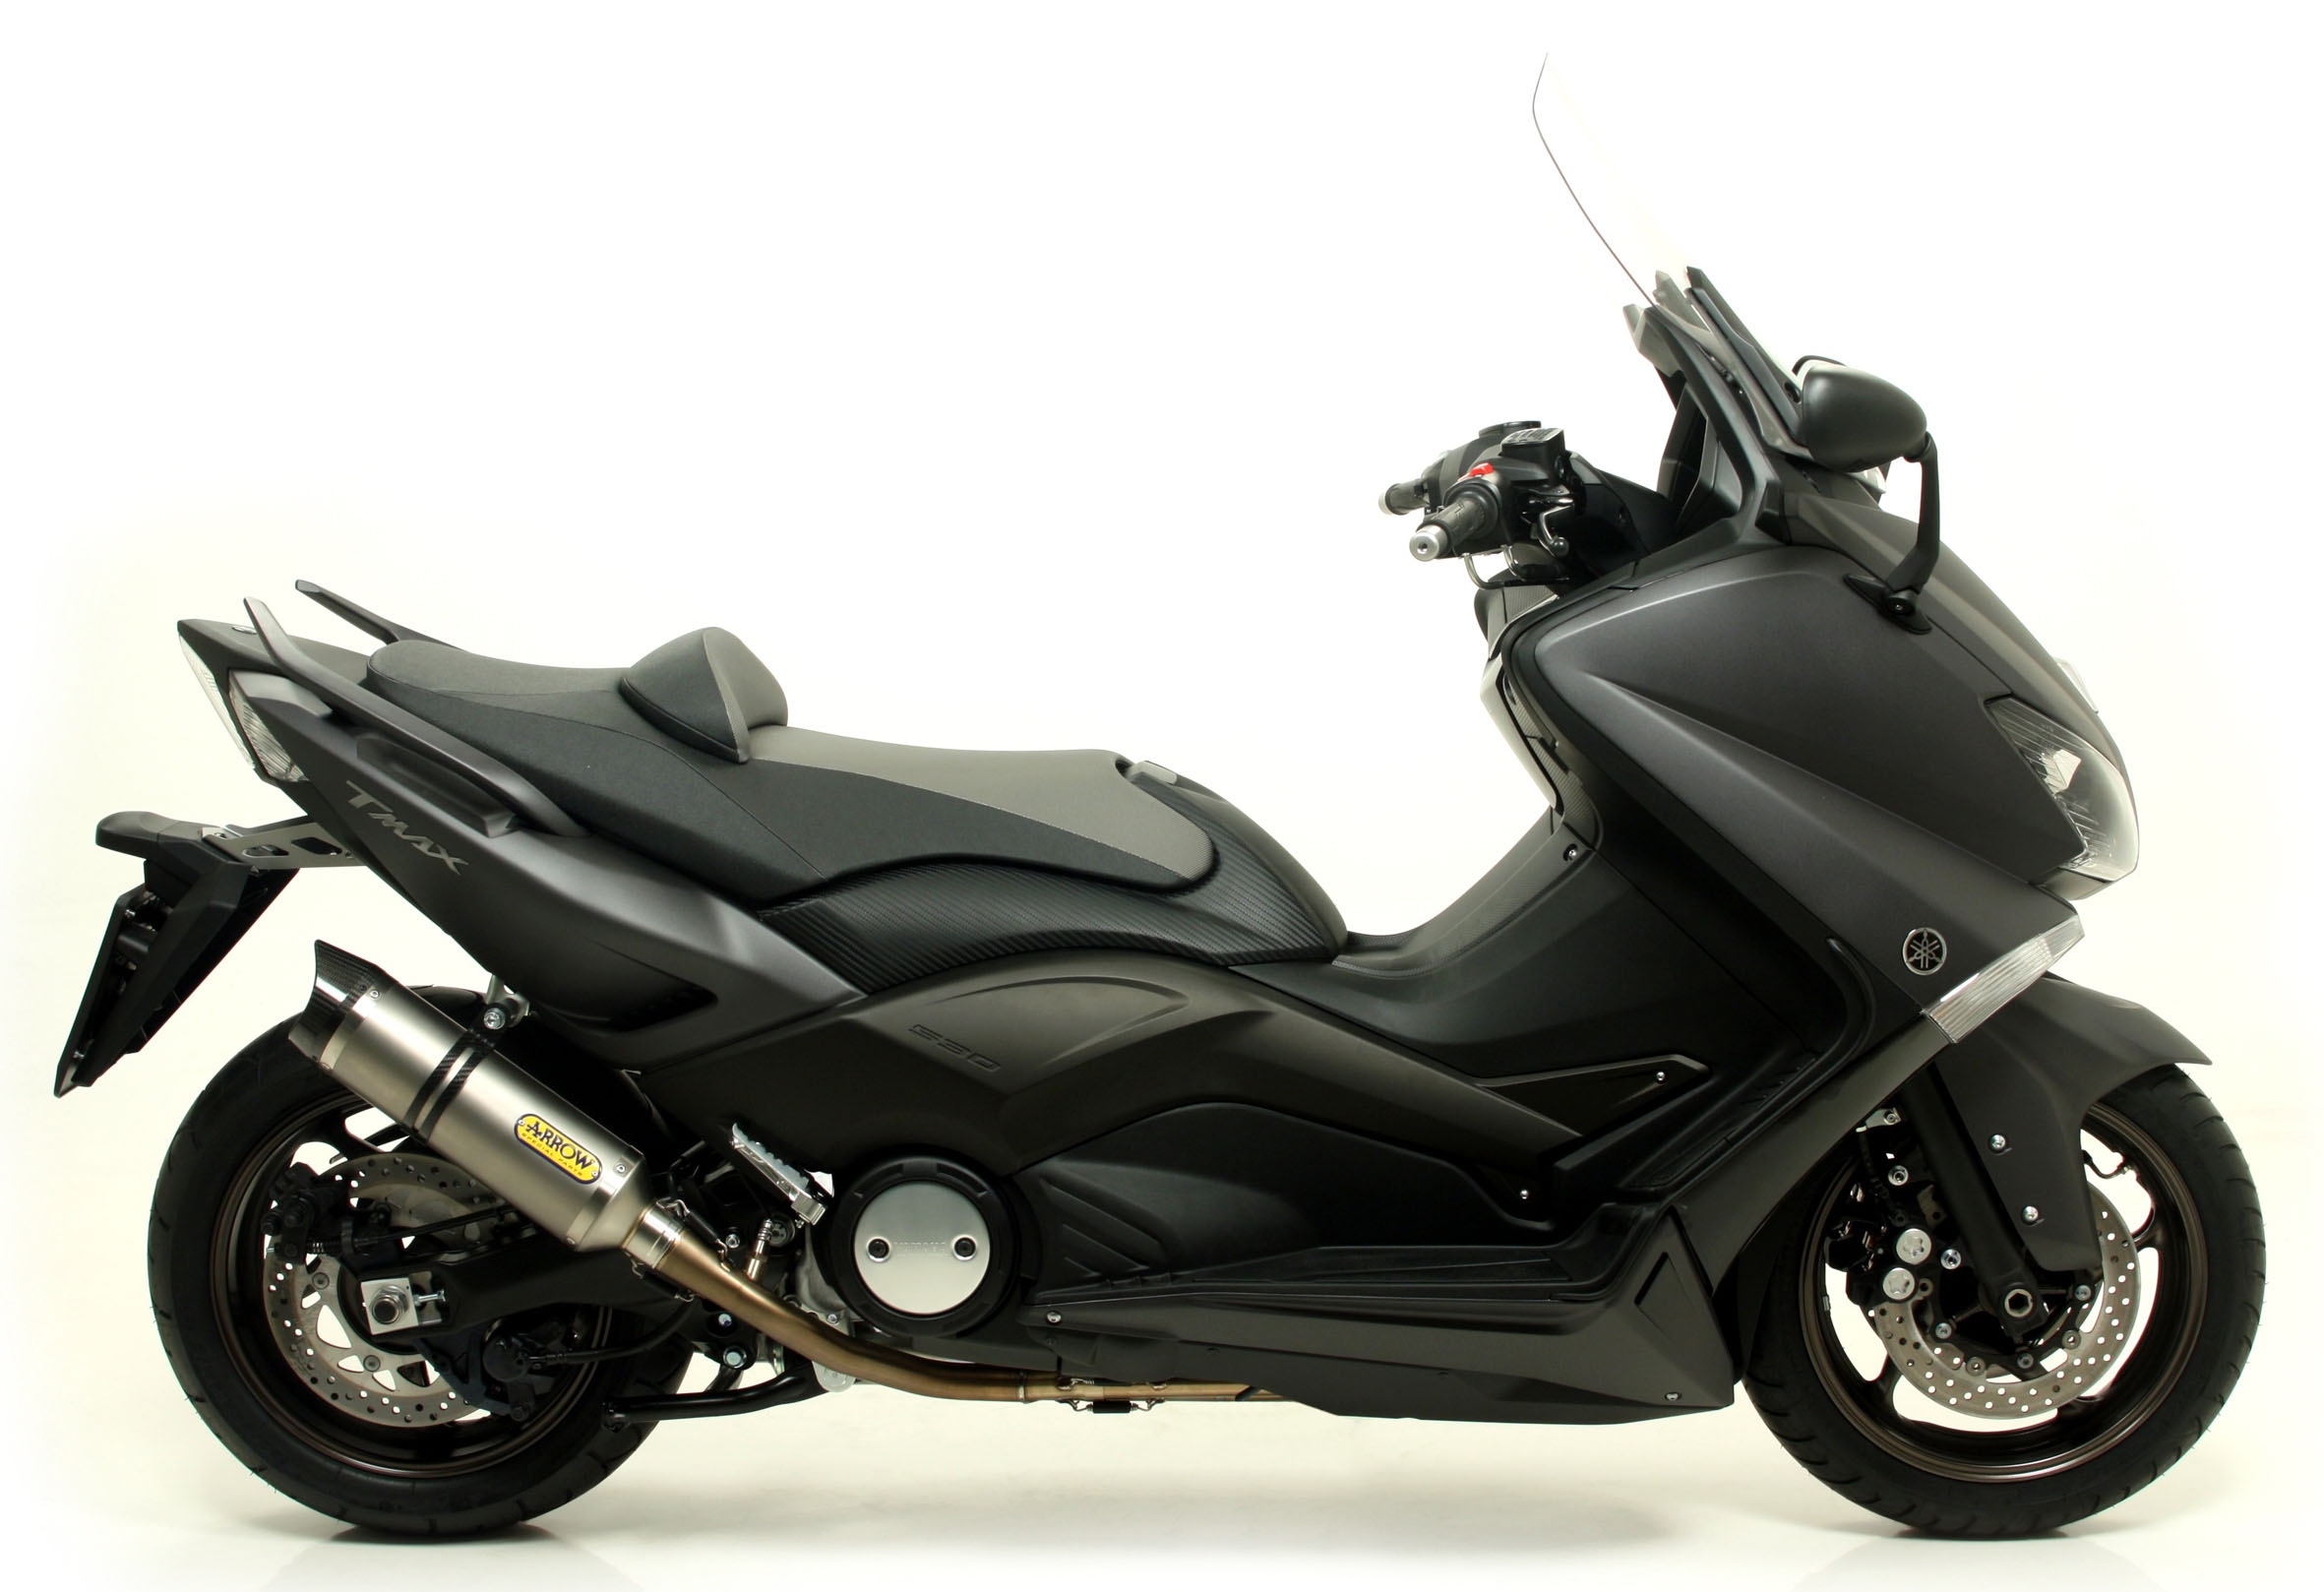 de l 39 arrow pour le yamaha tmax 530 le site suisse de l 39 information moto. Black Bedroom Furniture Sets. Home Design Ideas